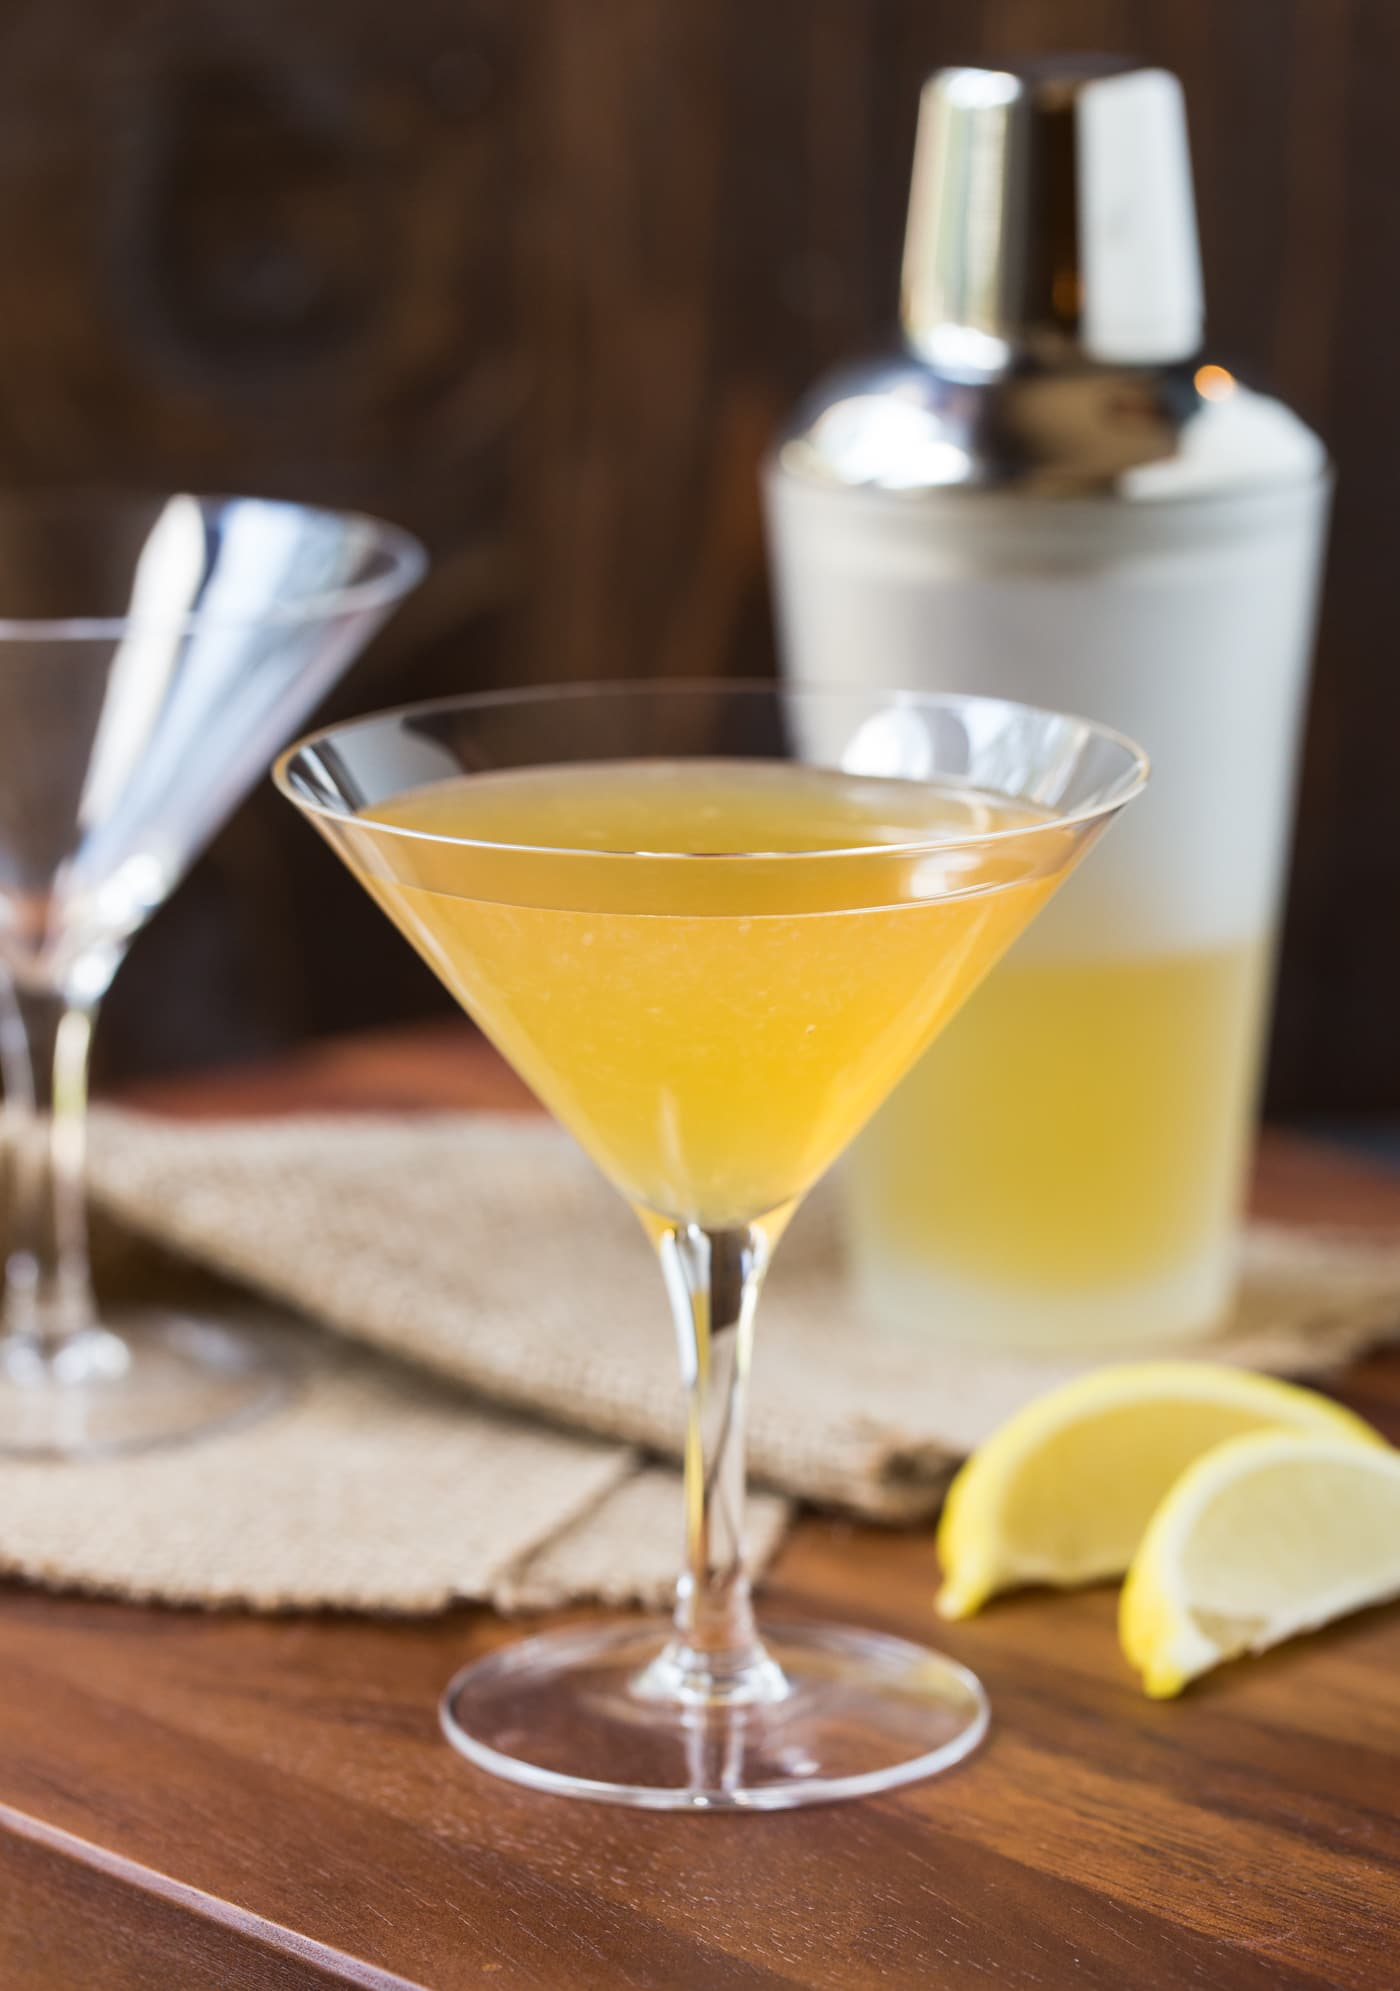 Craving a new fall cocktail? This Gold Rush Cocktail is a tasty mix of bourbon, ginger liqueur and lemon juice that is guaranteed to keep you toasty warm on cool fall evenings.